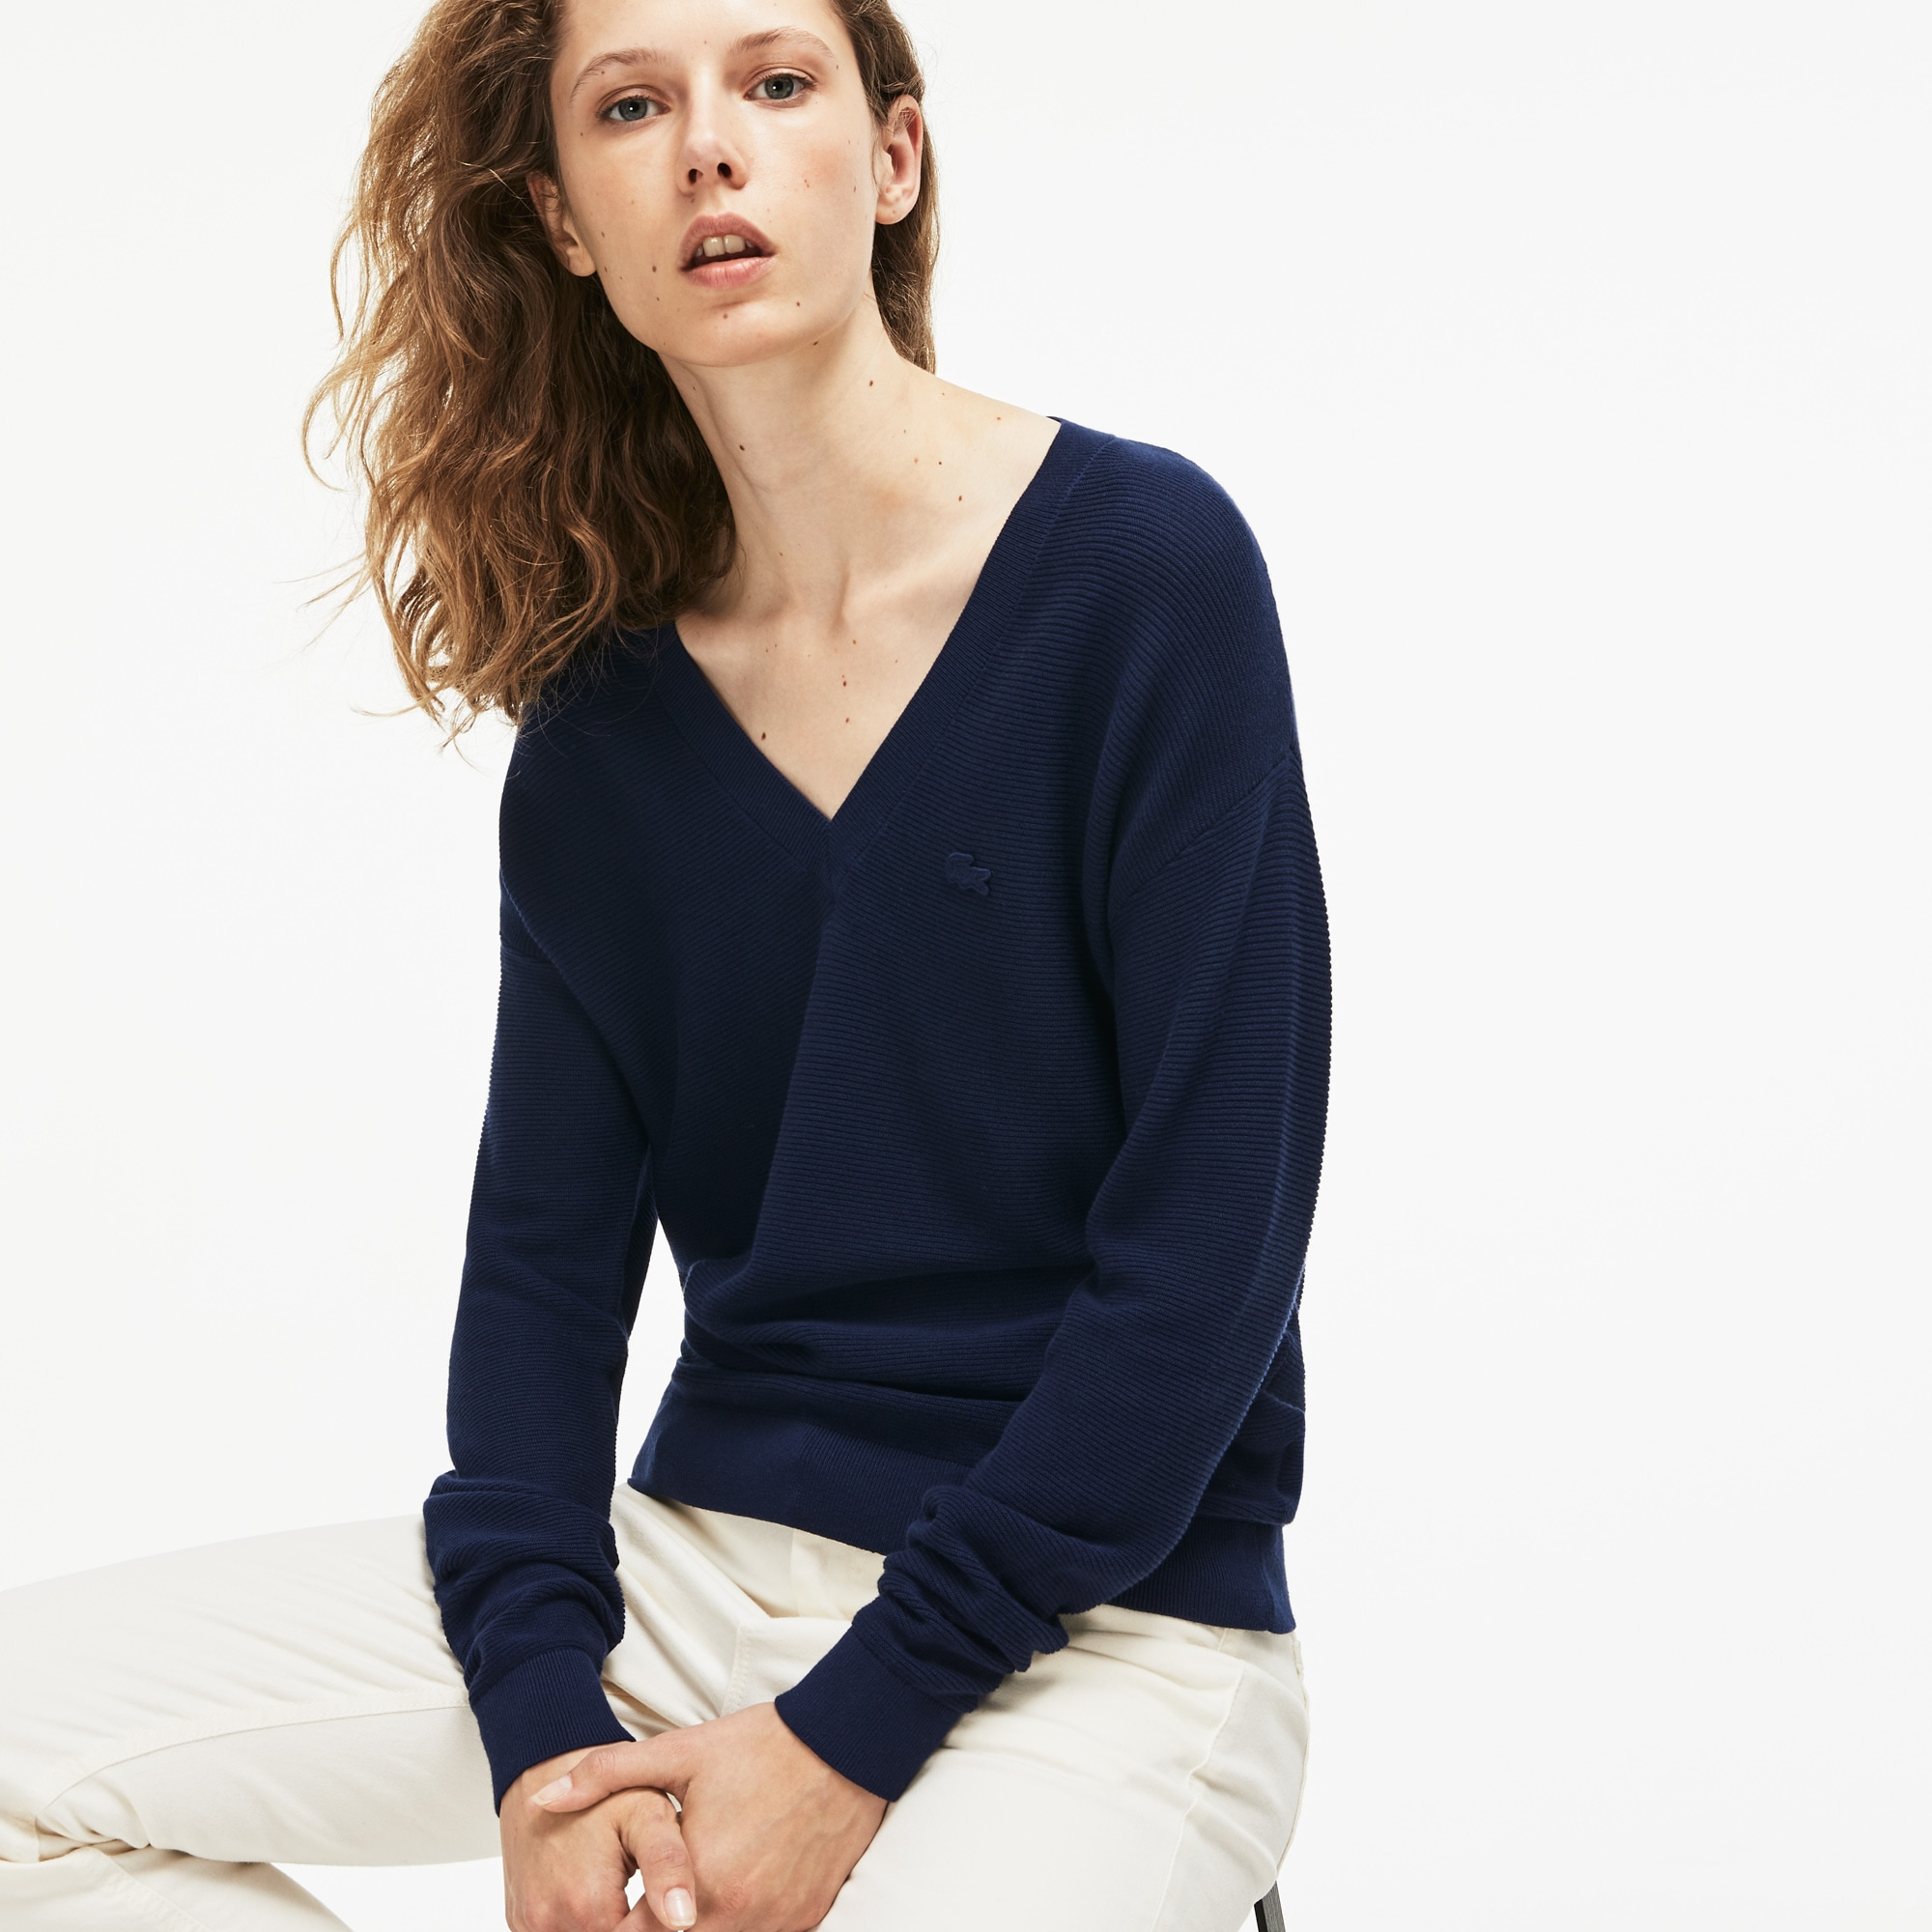 Women's V-neck Seed Stitch Cotton Sweater